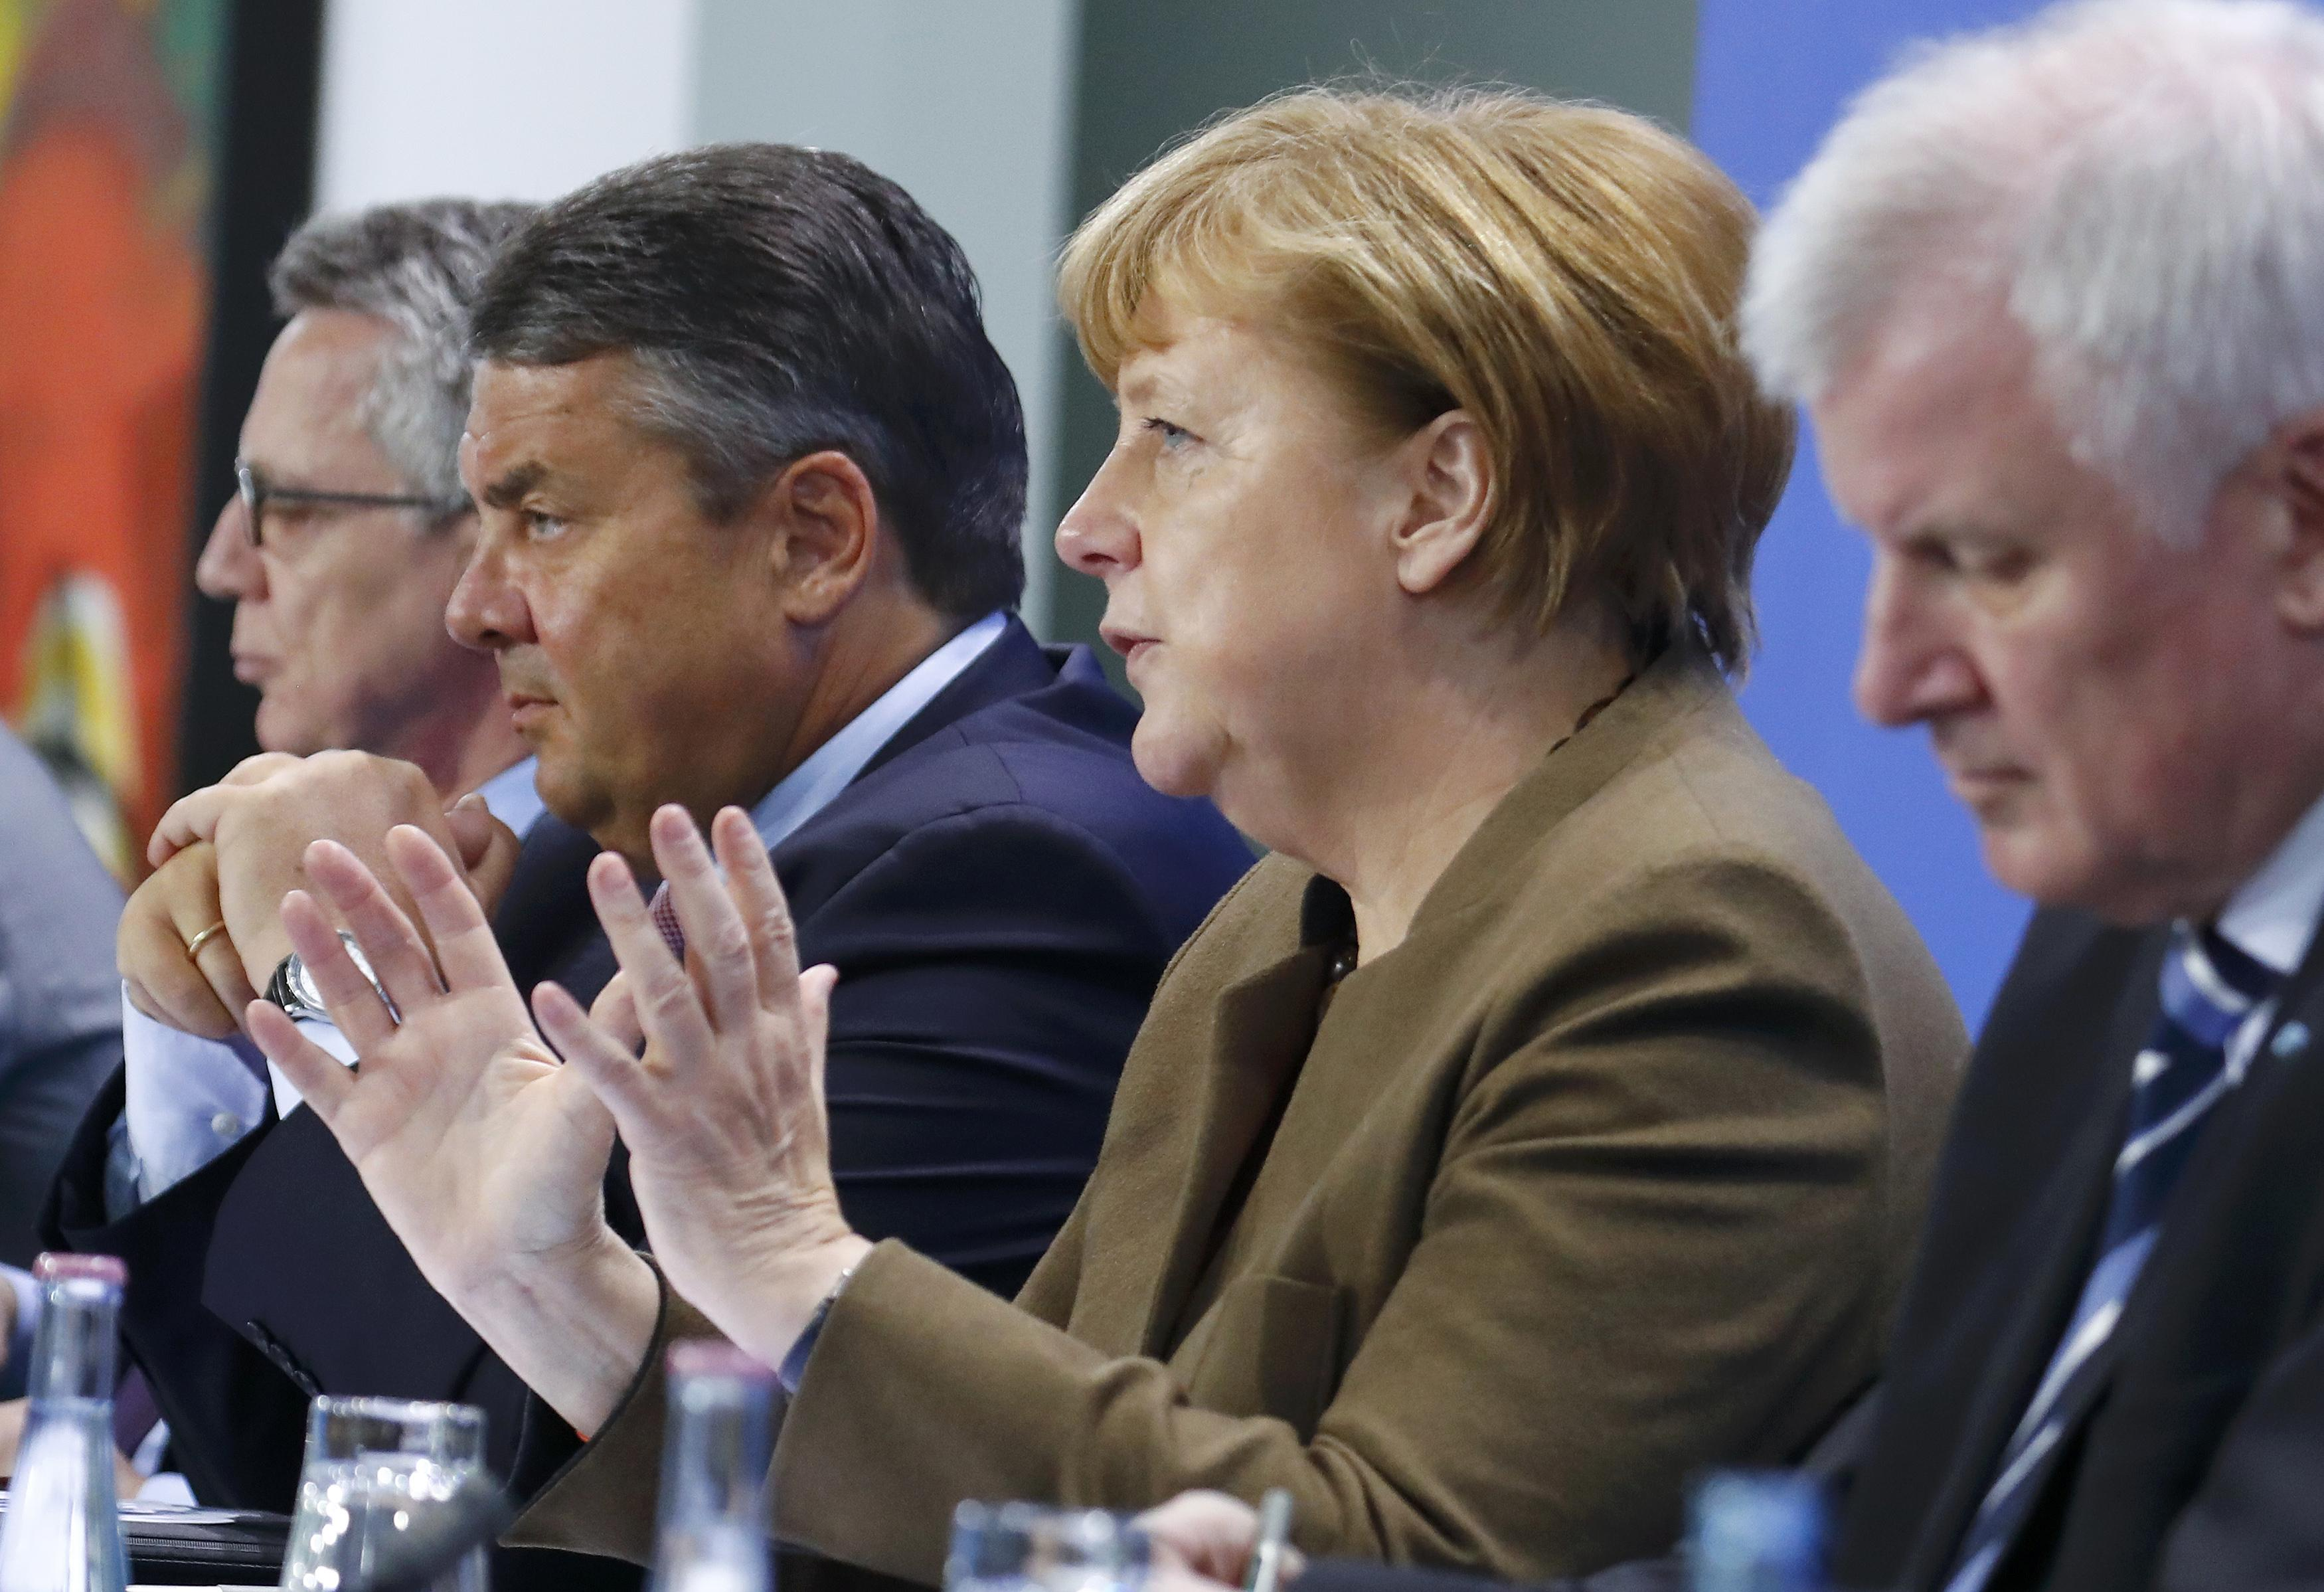 German Chancellor Merkel speaks next her ministers during a news conference at the Chancellery in Berlin